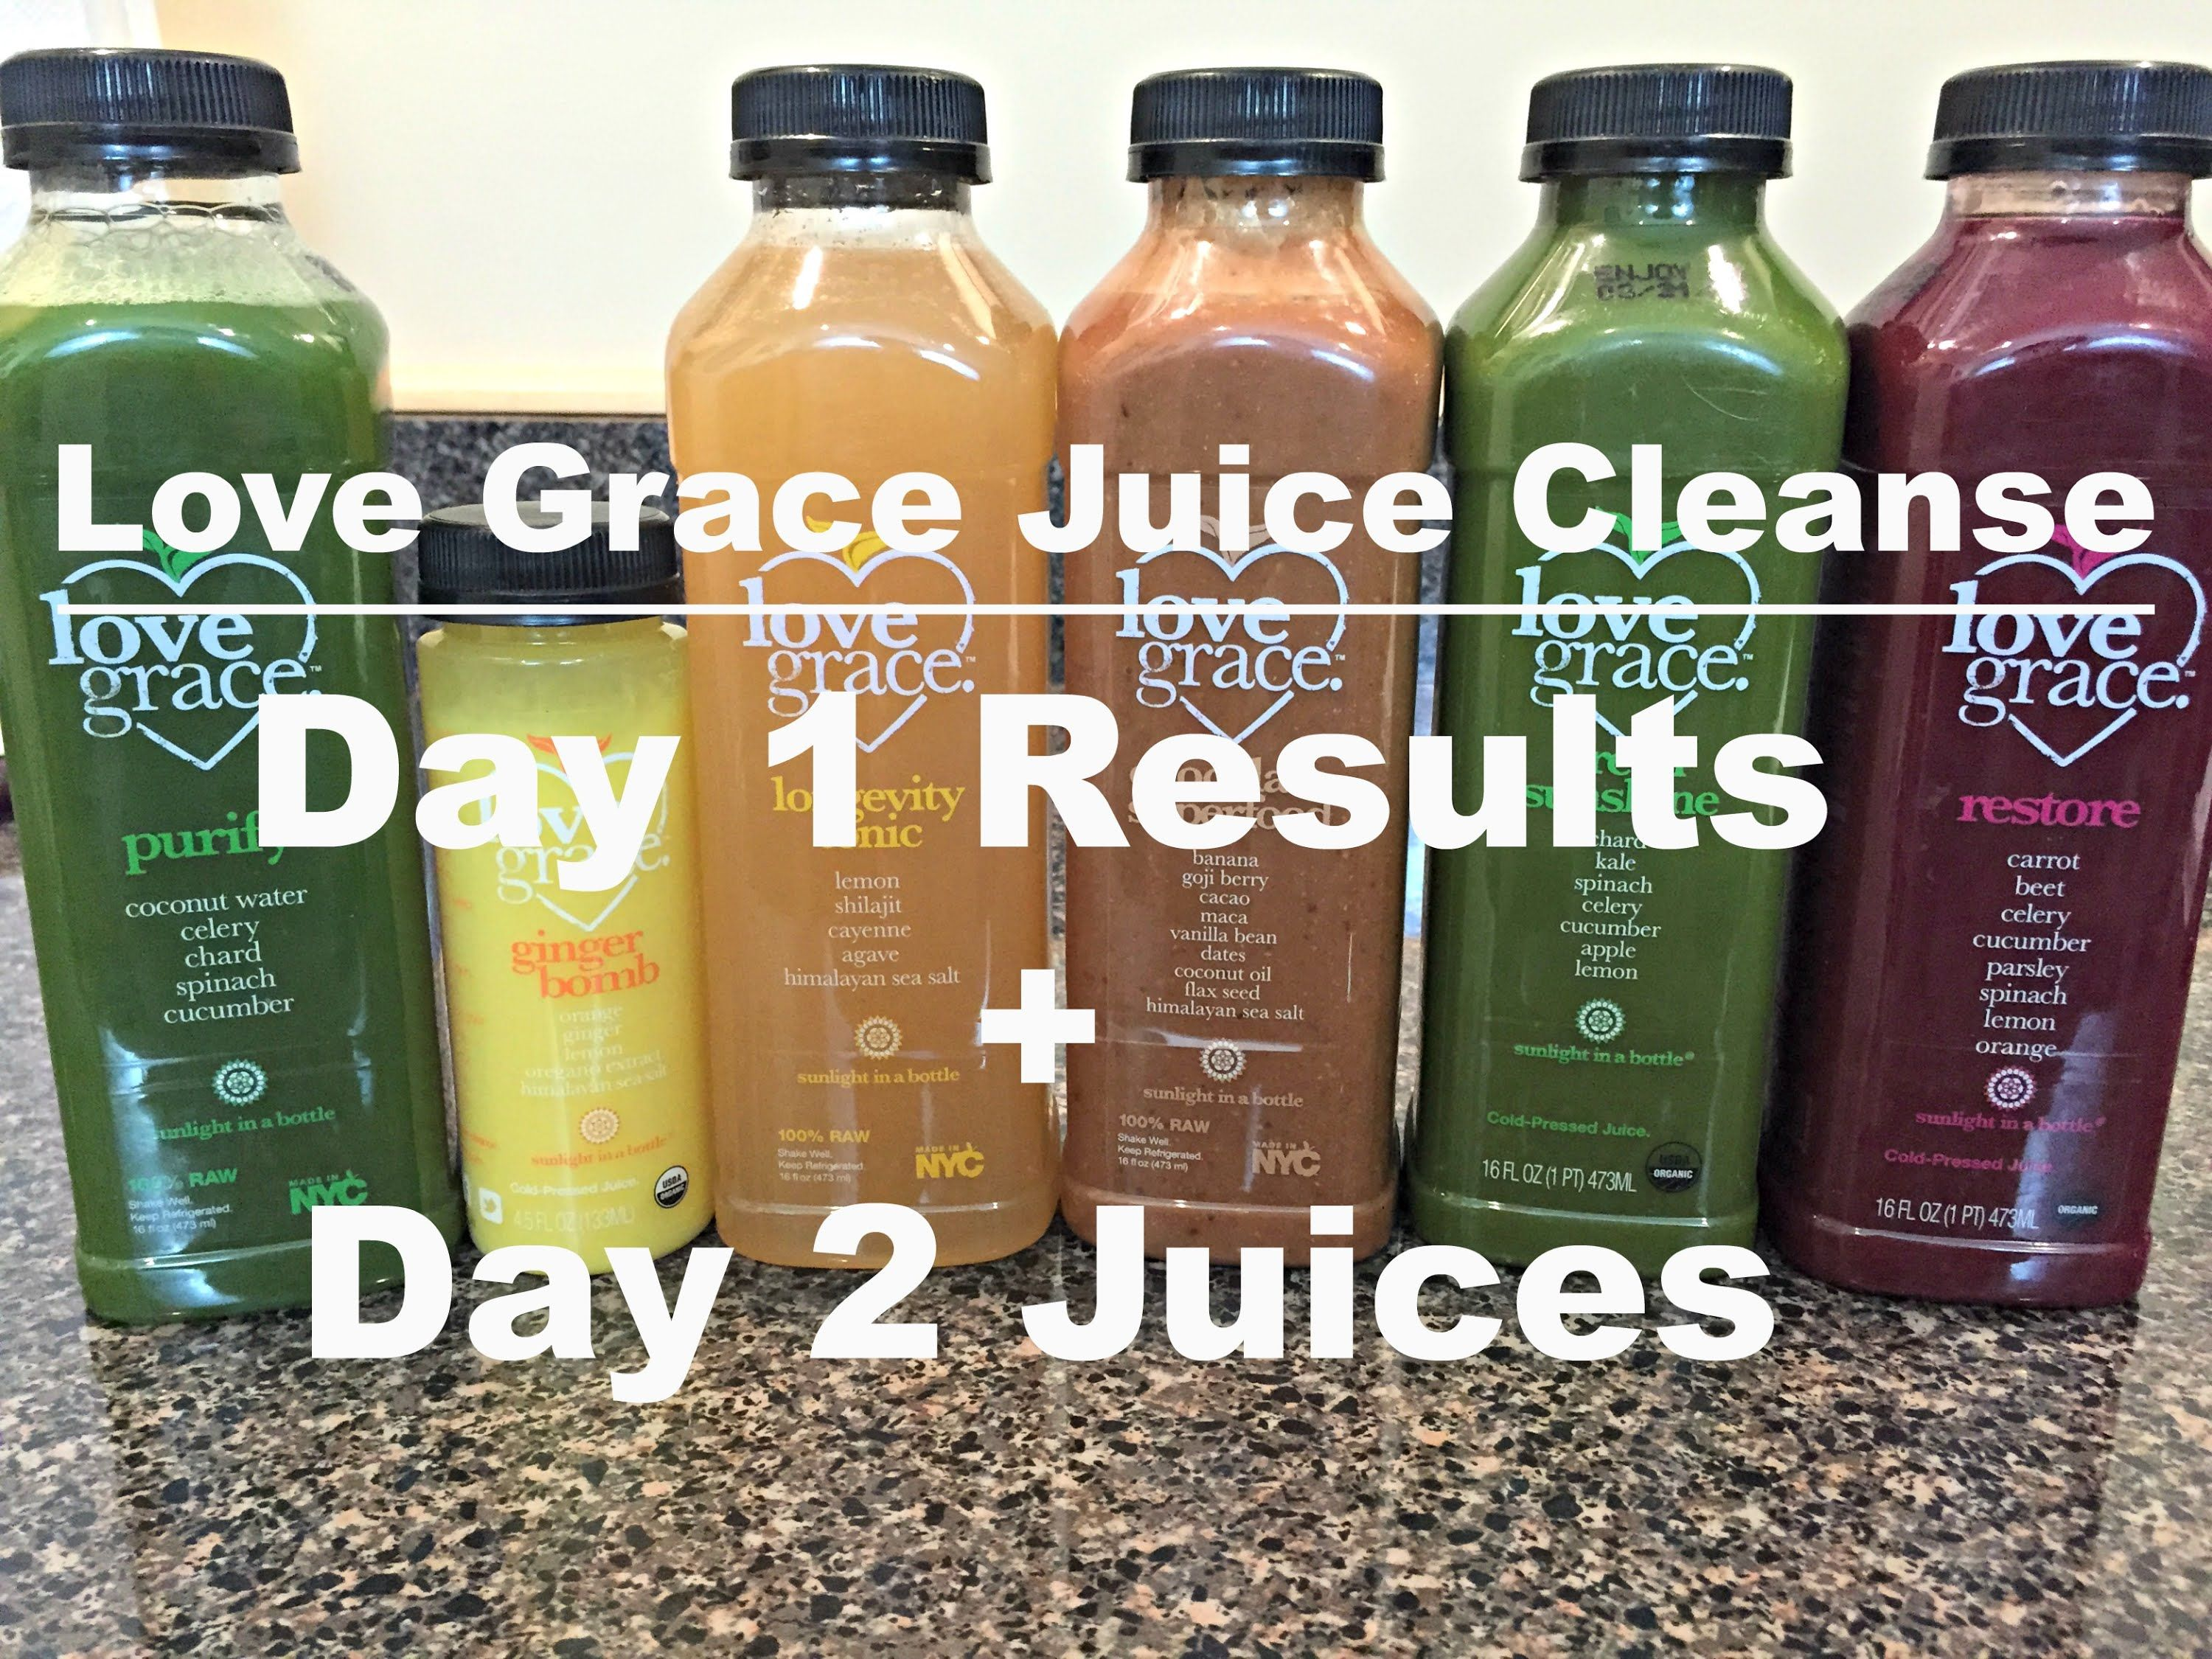 Love grace juice cleanse day 1 results day 2 juices juicing love grace juice cleanse day 1 results day 2 juices malvernweather Choice Image